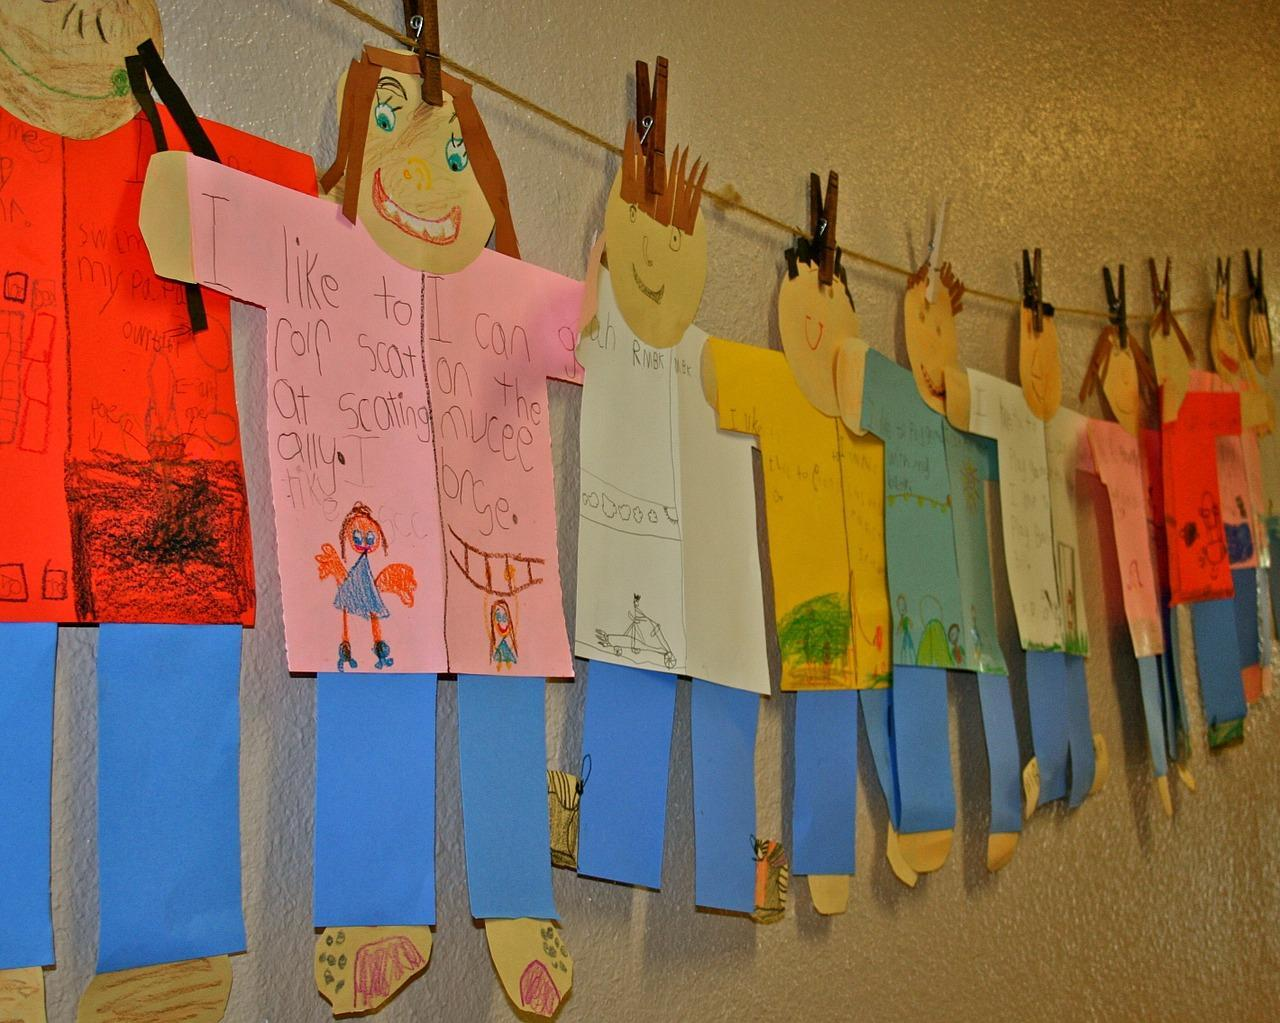 Cutout kids with different colored shirts